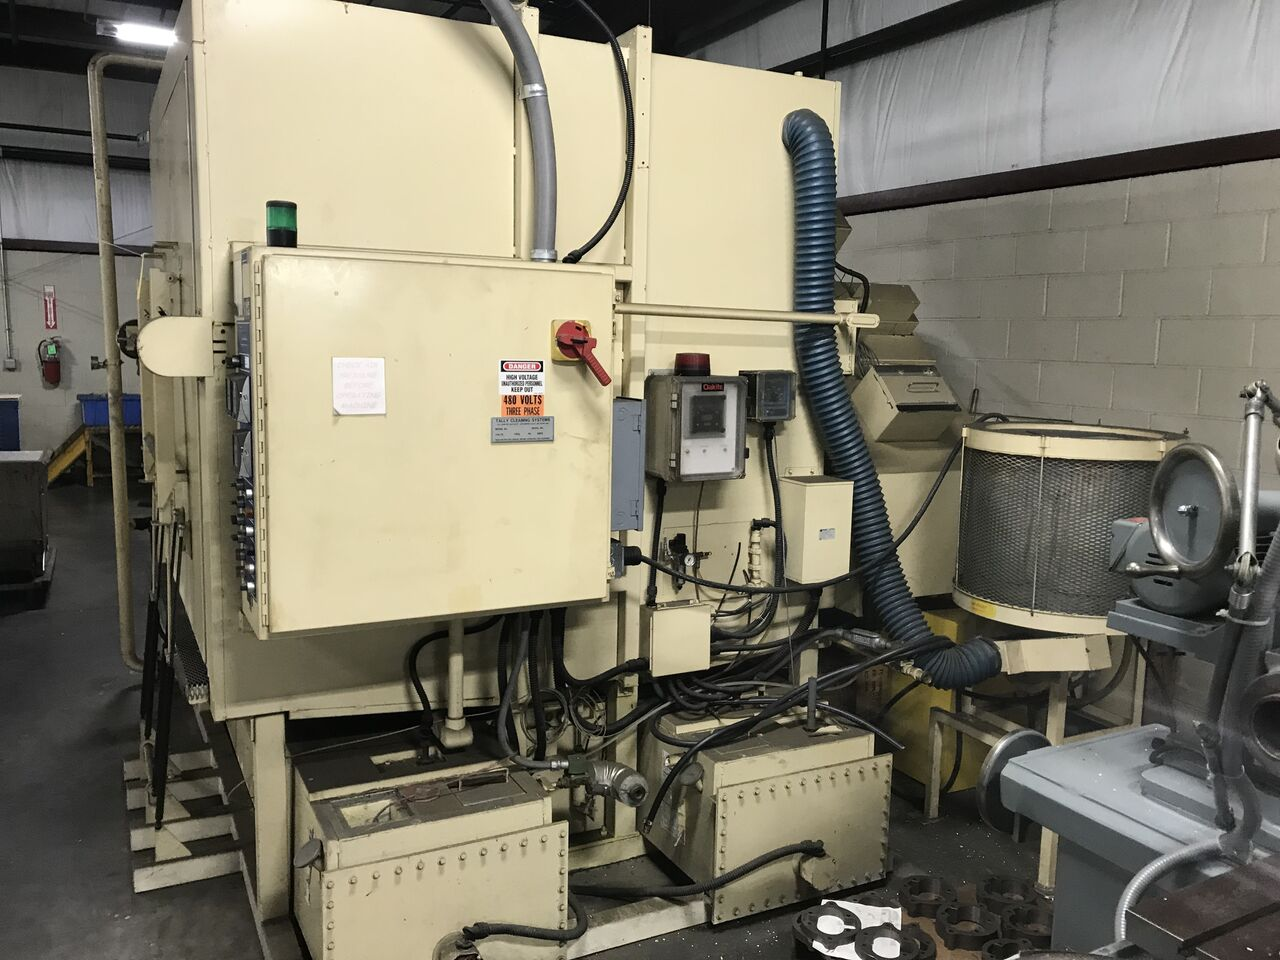 Lot 7 - Tally Cleaning Turbo Spray Washer, Model # = TSW60, Serial # = 963, Volts = 480, Amps = 150